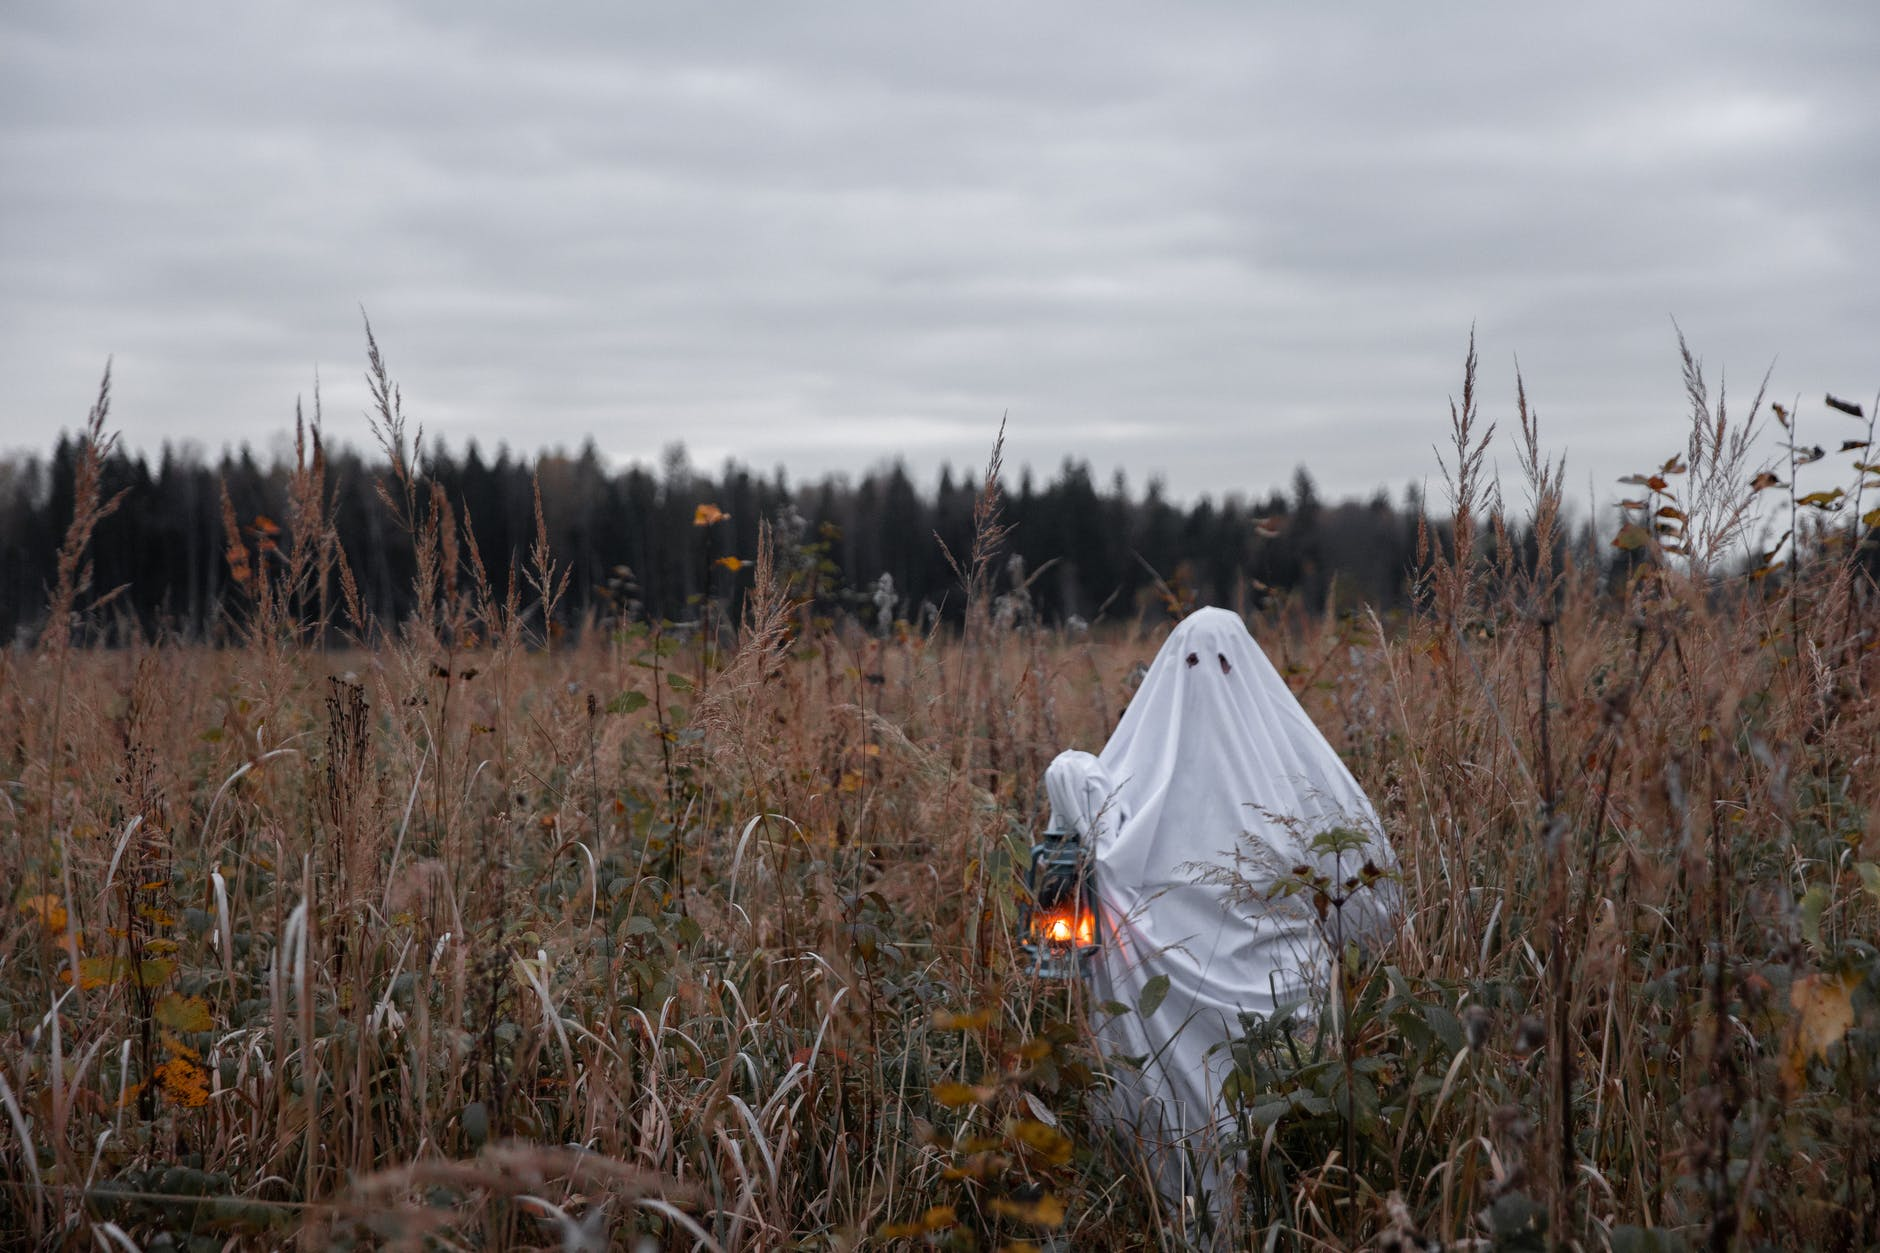 person in ghost costume standing in a grass field with a lantern